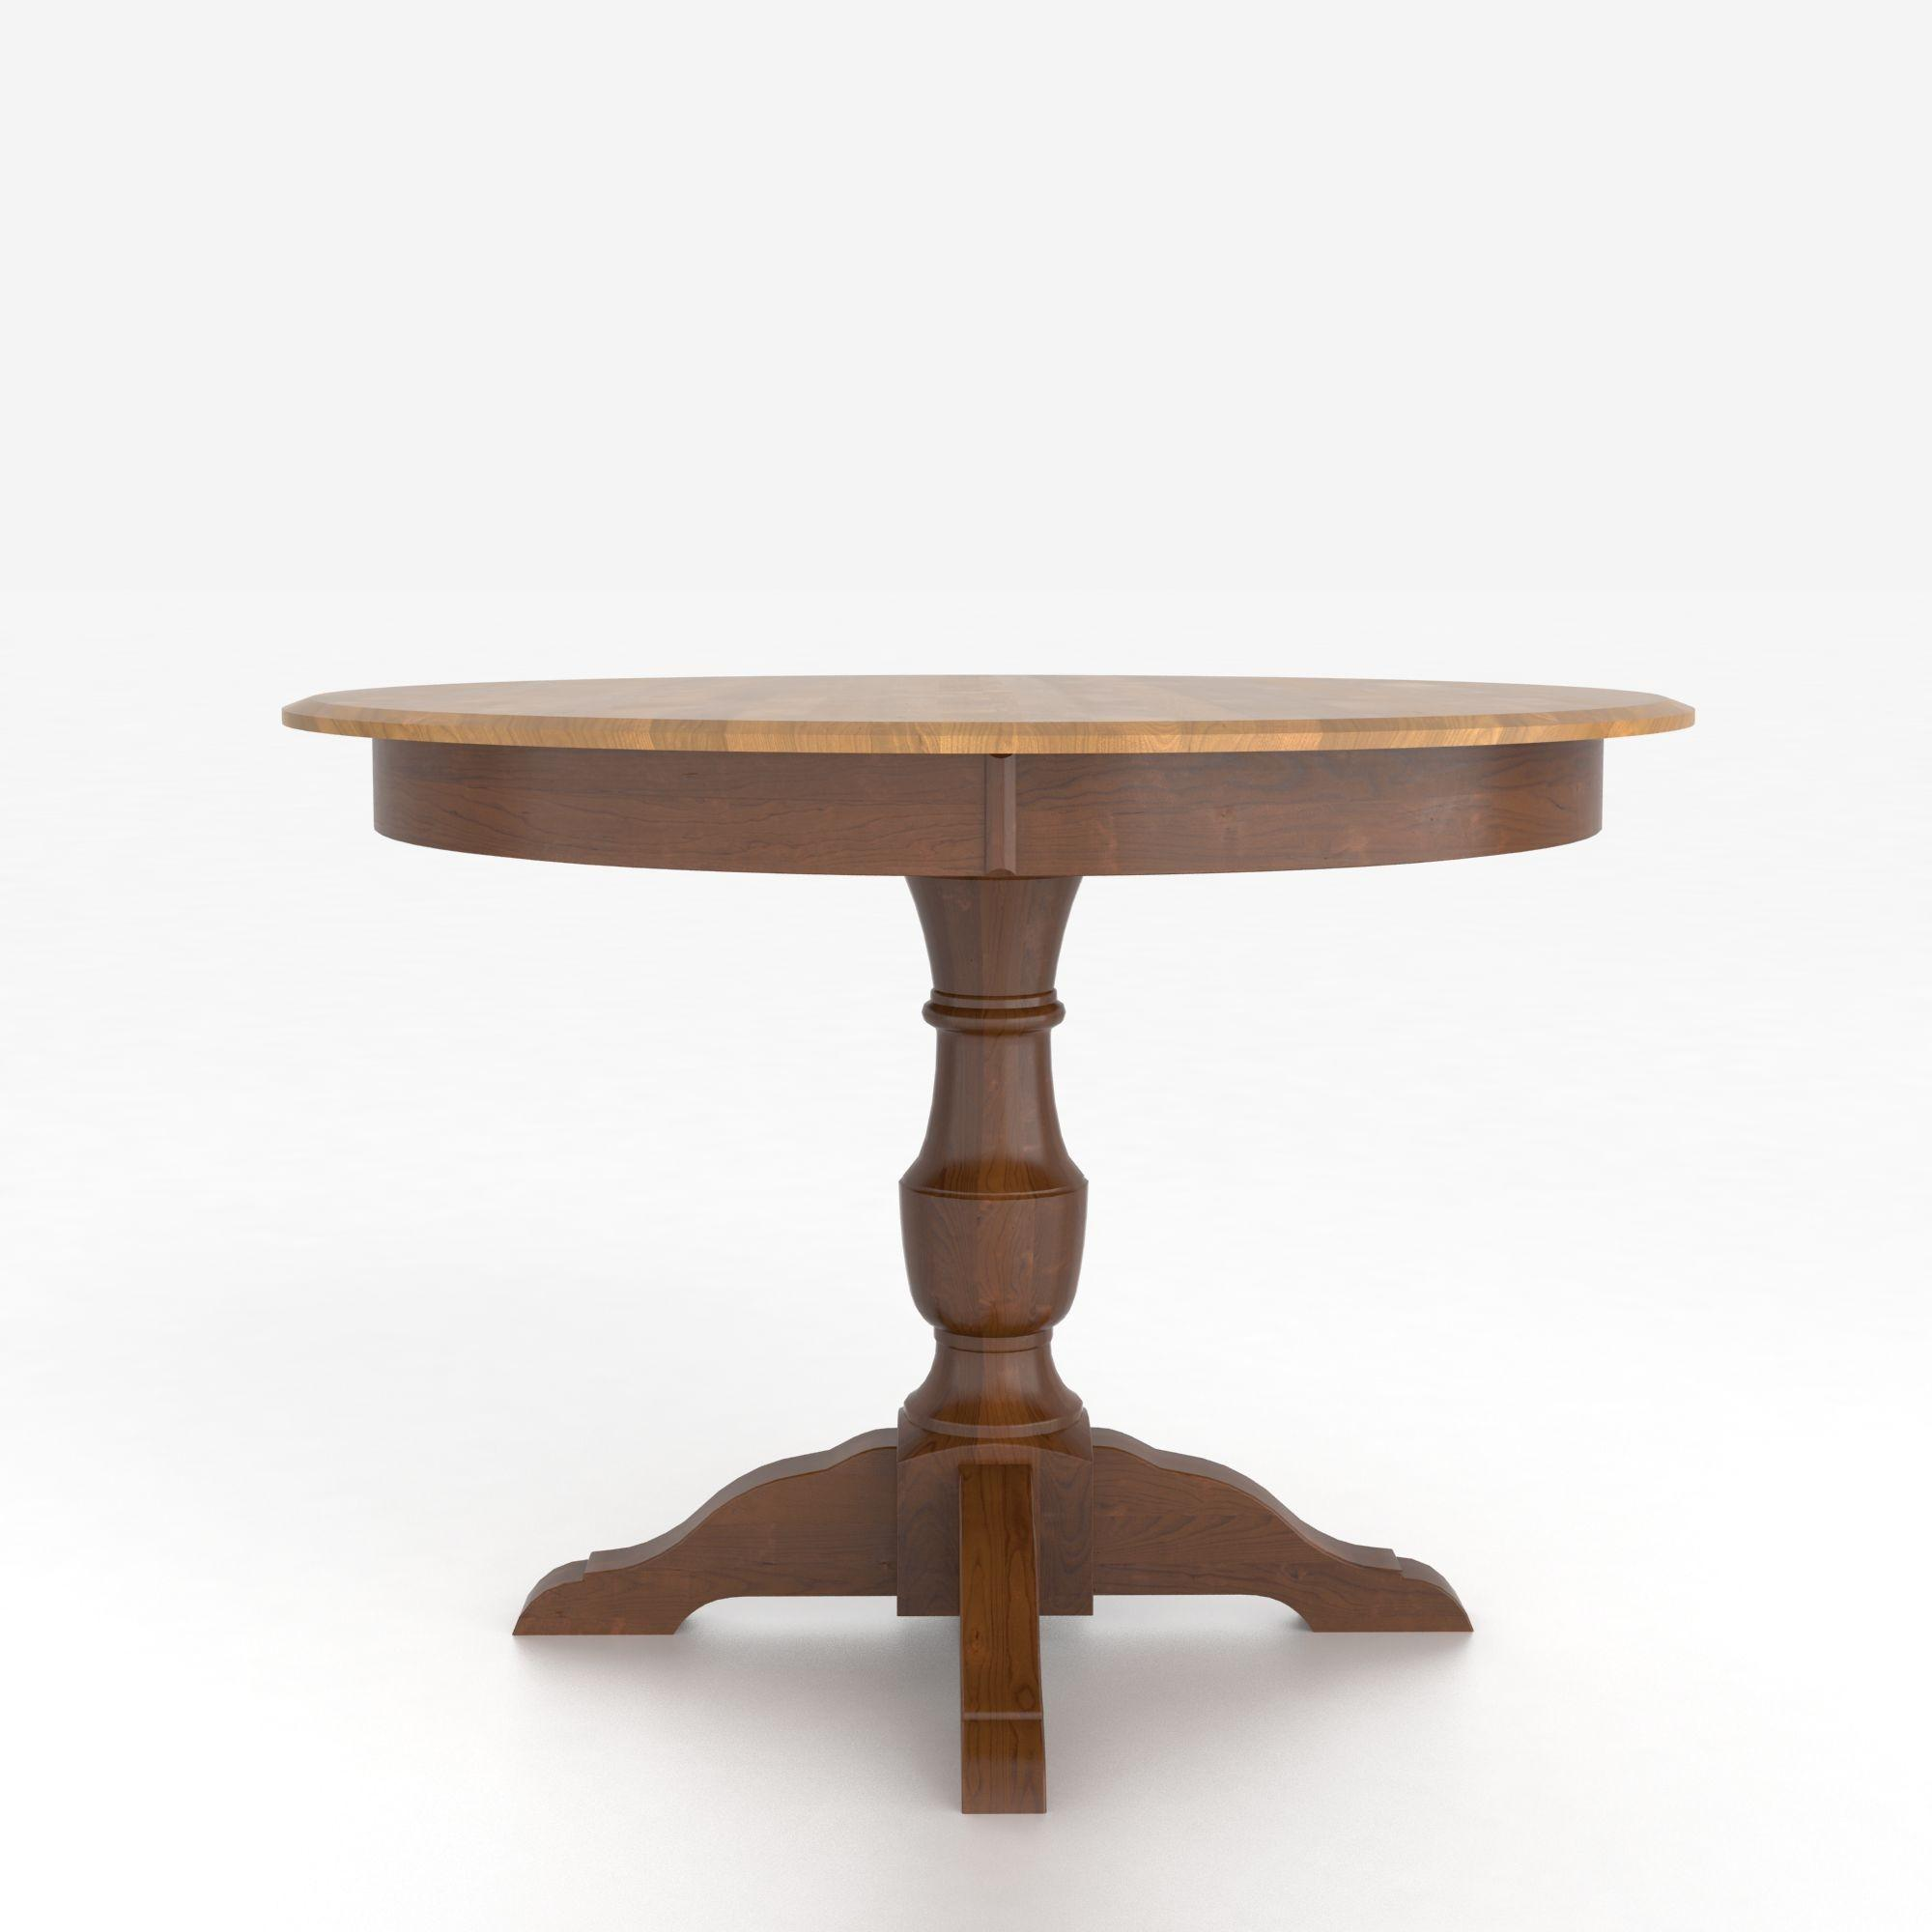 Custom Dining Tables Customizable Round Table with Pedestal by Canadel at Dinette Depot